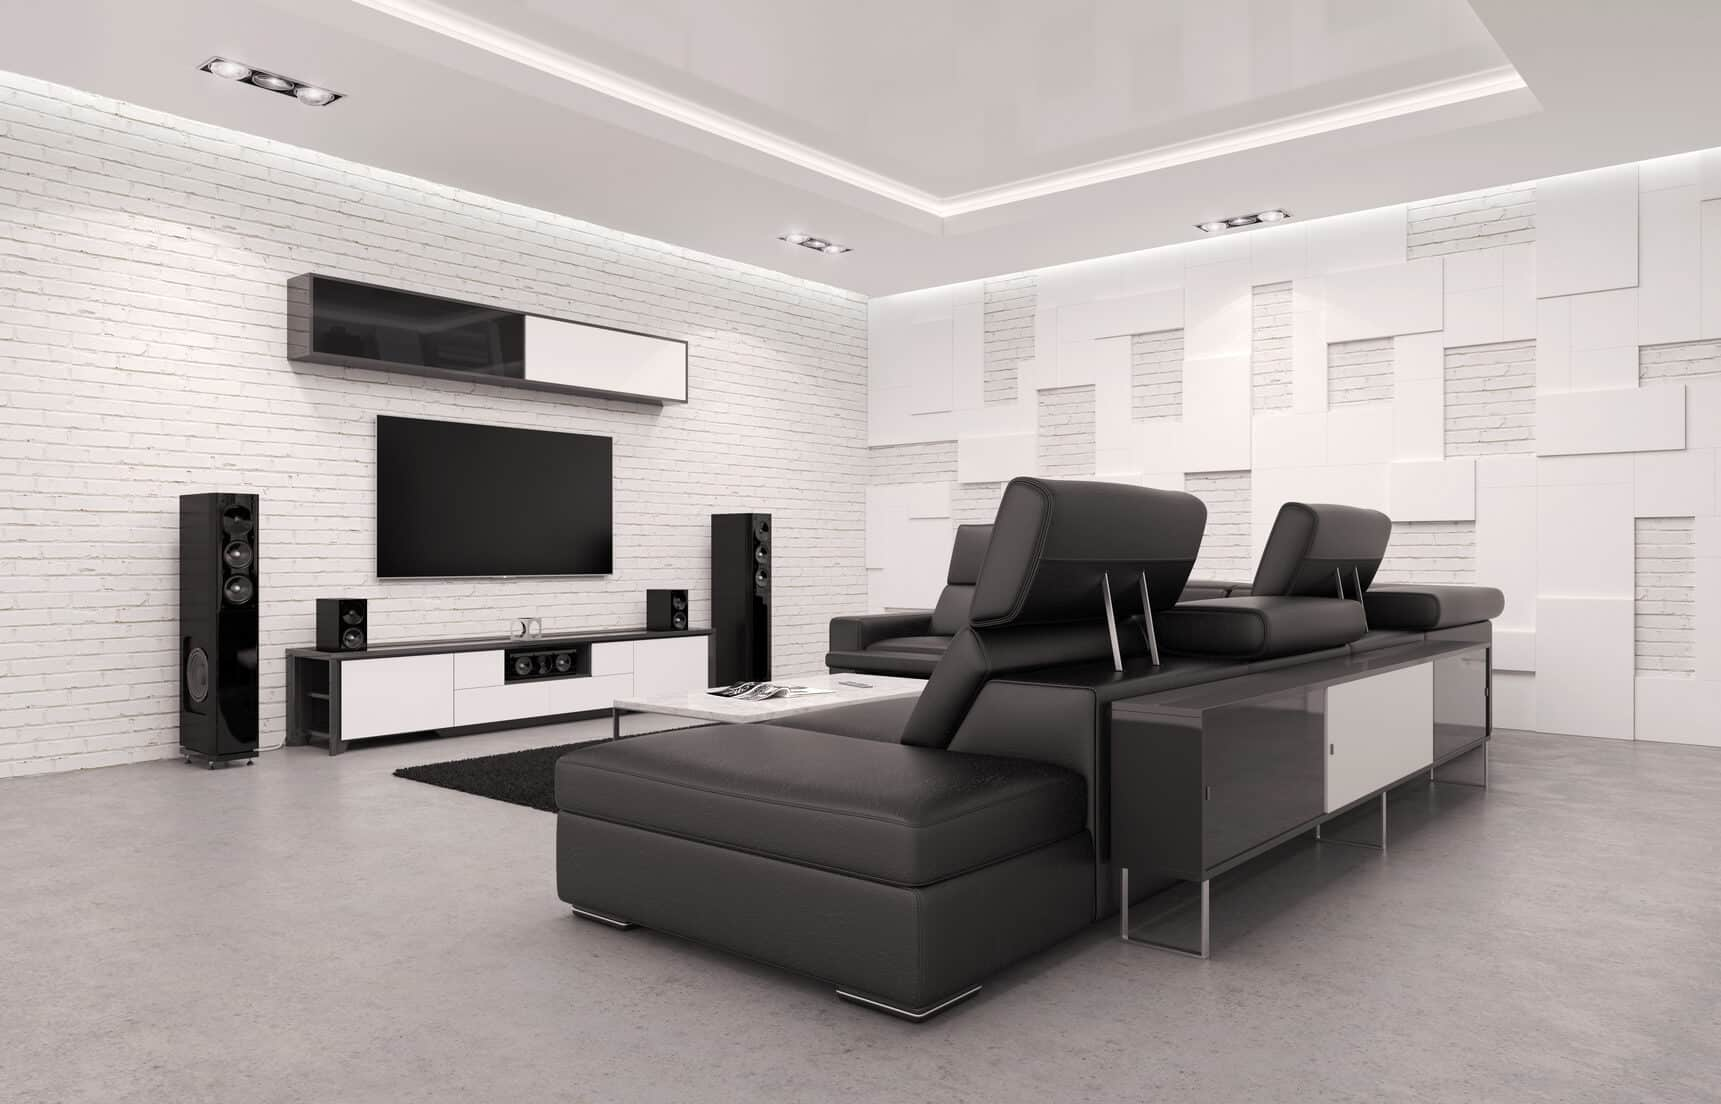 TV screen and speakers